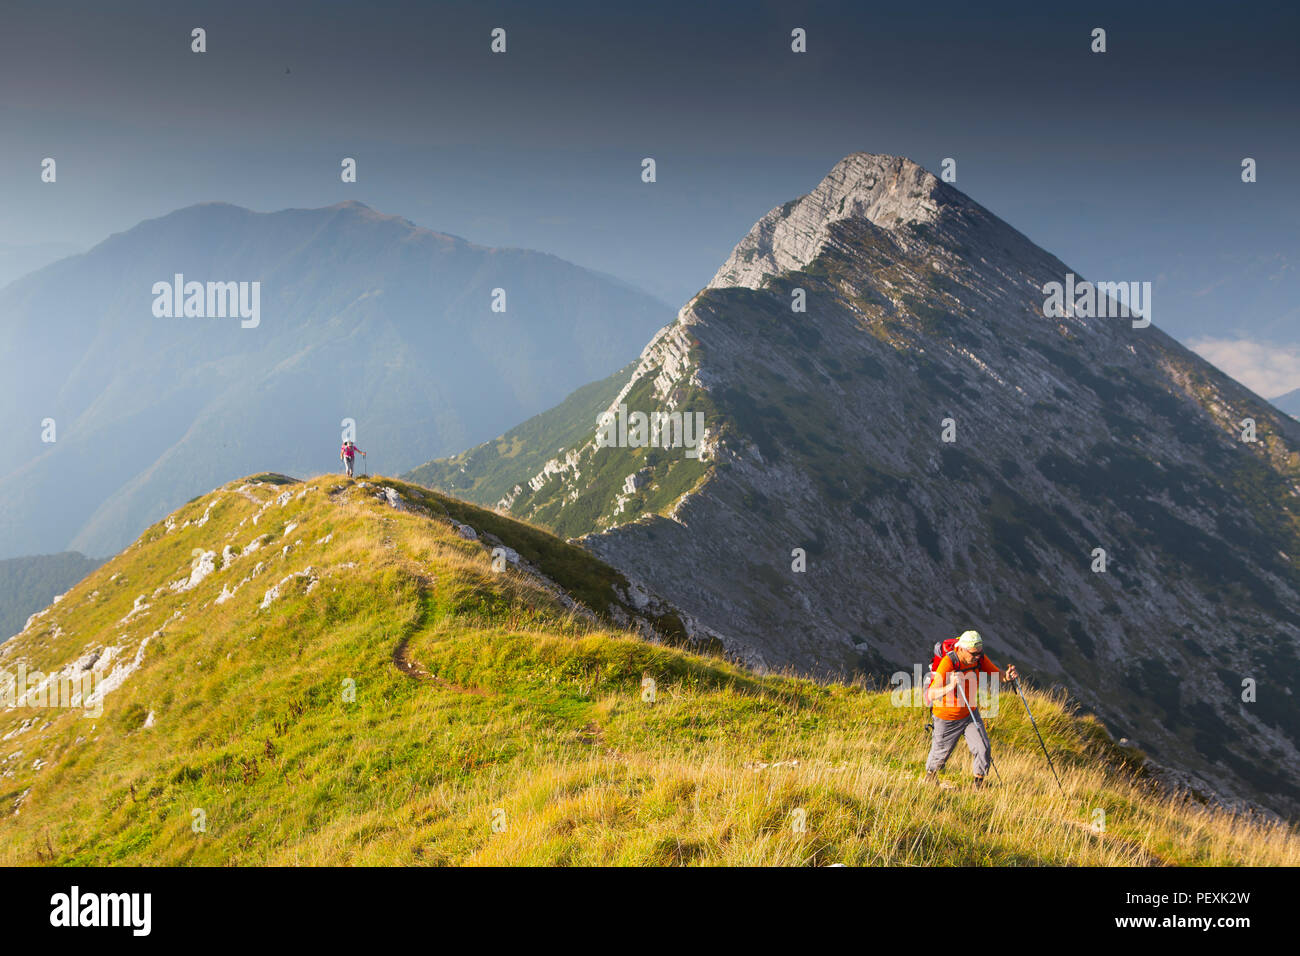 Mount Vogel, Nationalpark Triglav, Slowenien Stockbild